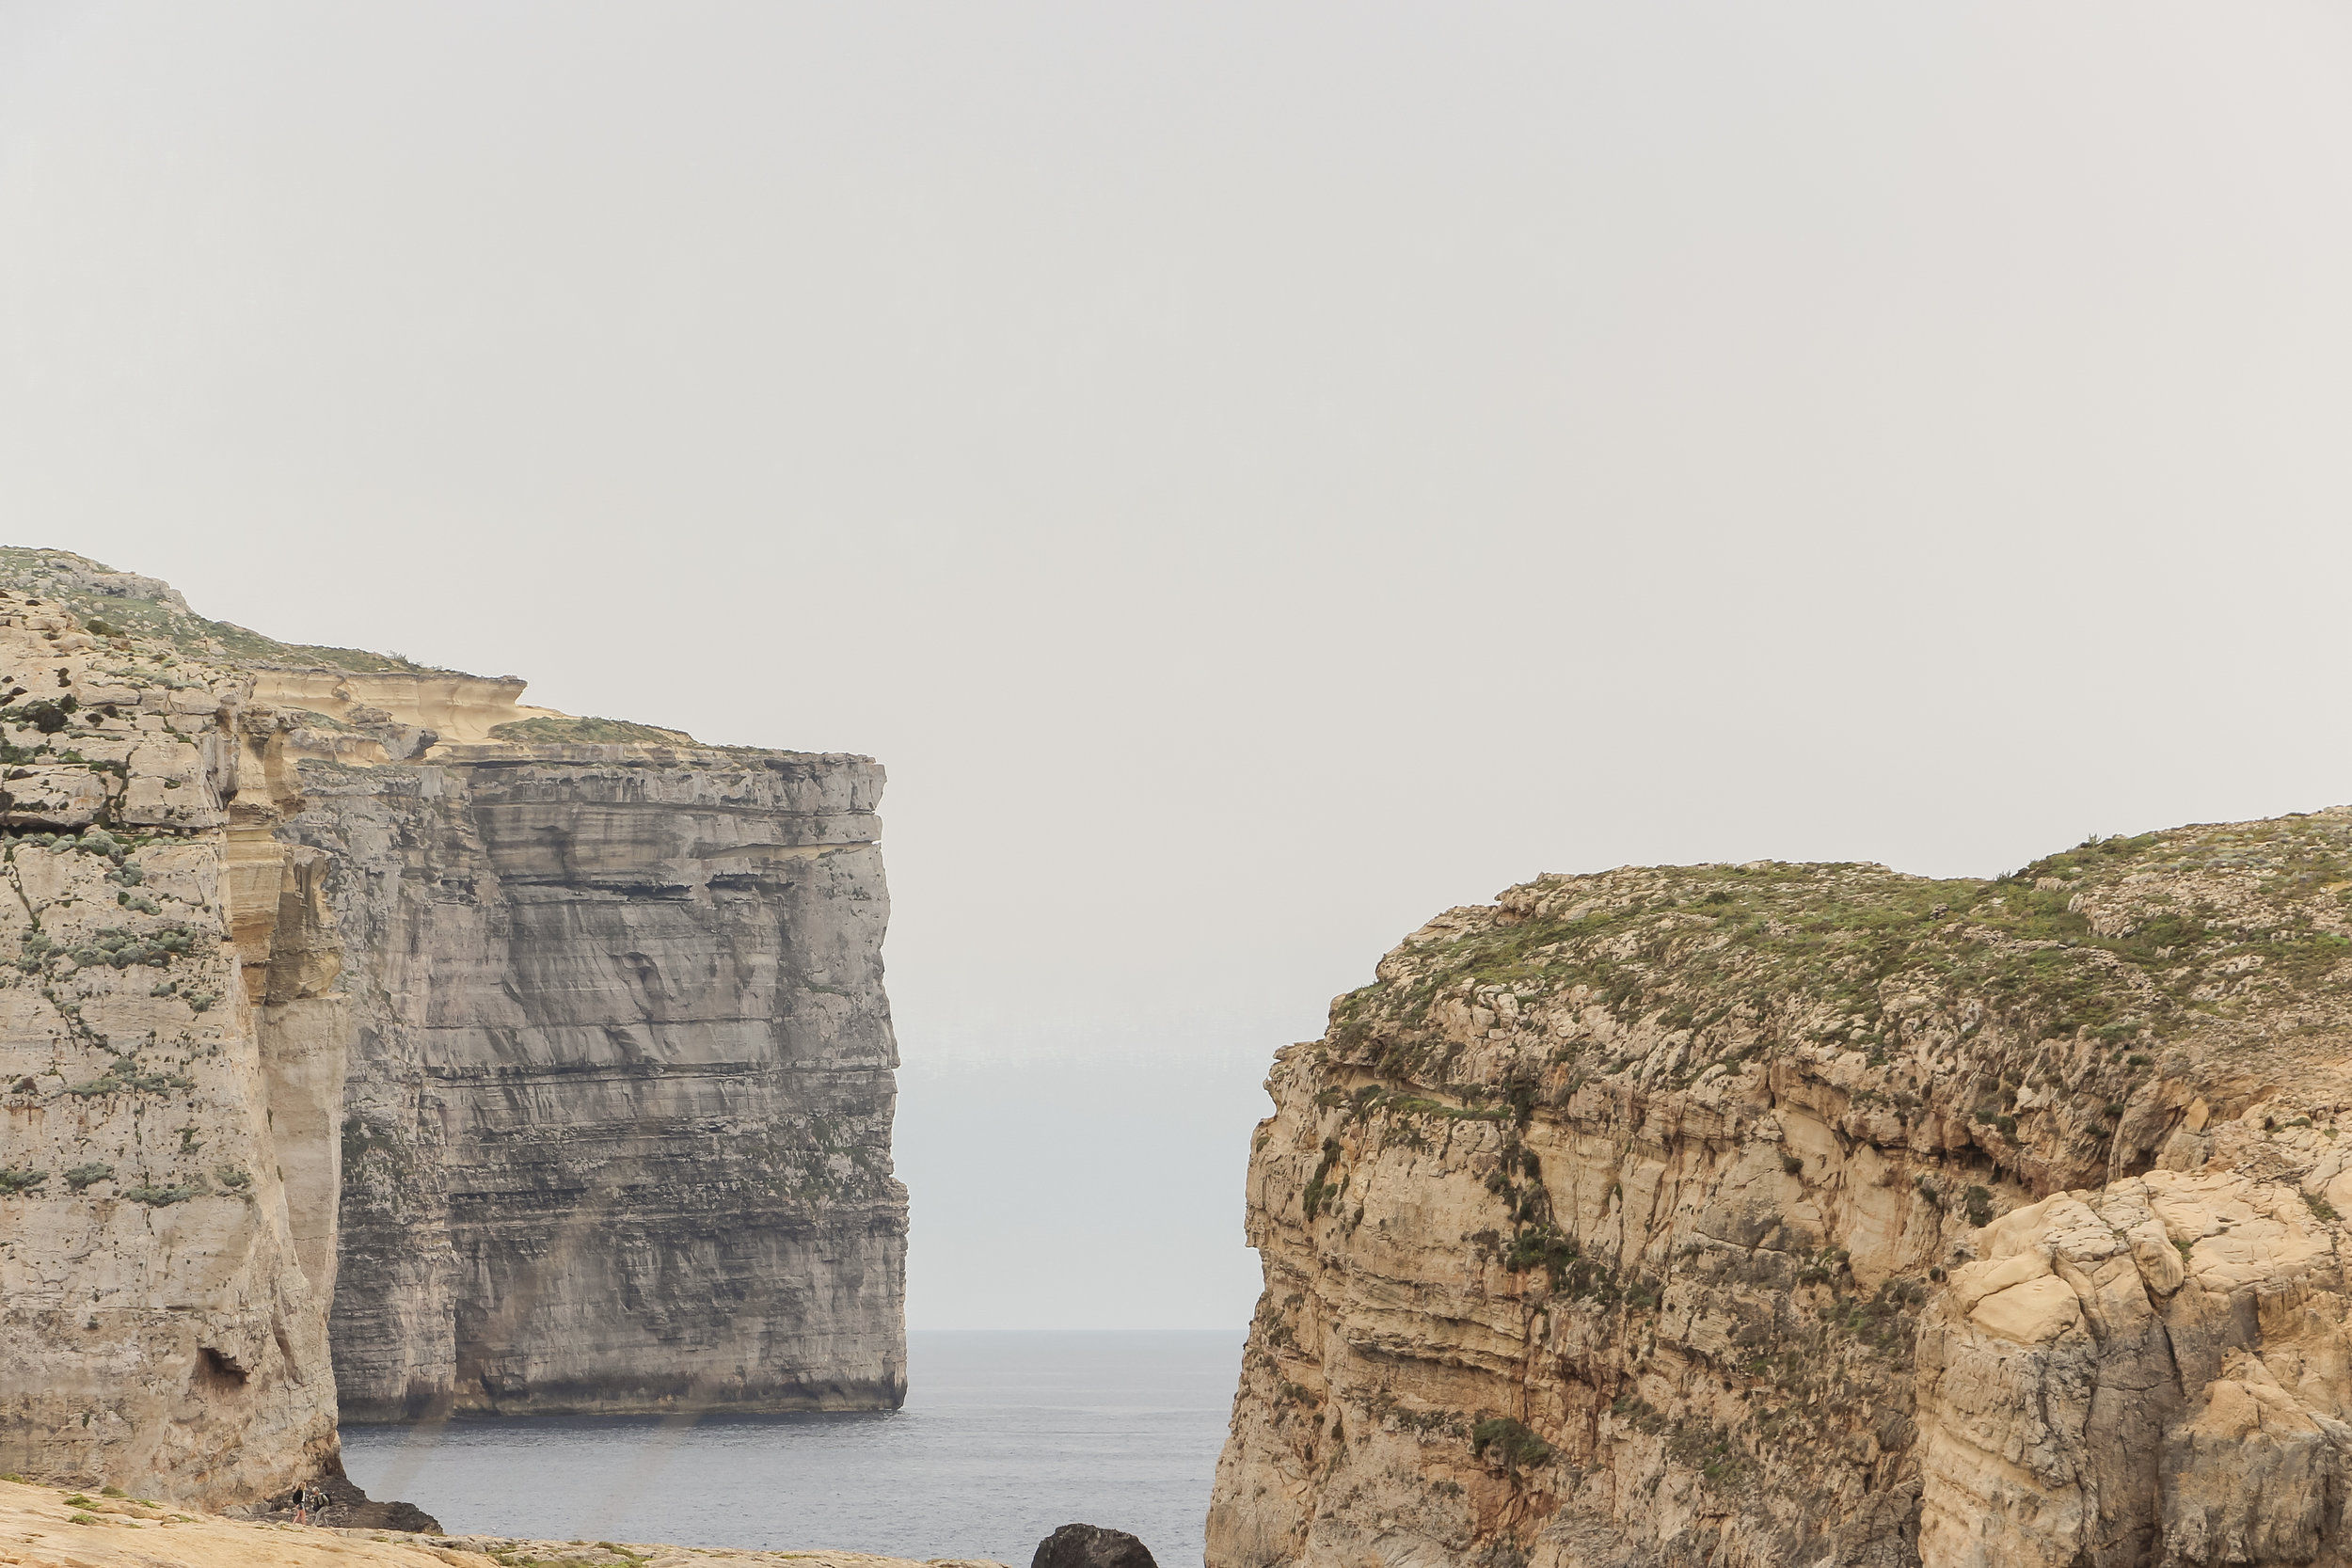 Mediterranean Coast | MAltese Islands Nature | LAndscape - Thinking About Appreciation For Quality In Malta | Gozo, Malta, Europe | DoLessGetMoreDone.com | - Canon Minimal Travel Documentary Photography - search for Liveability | Sustainability